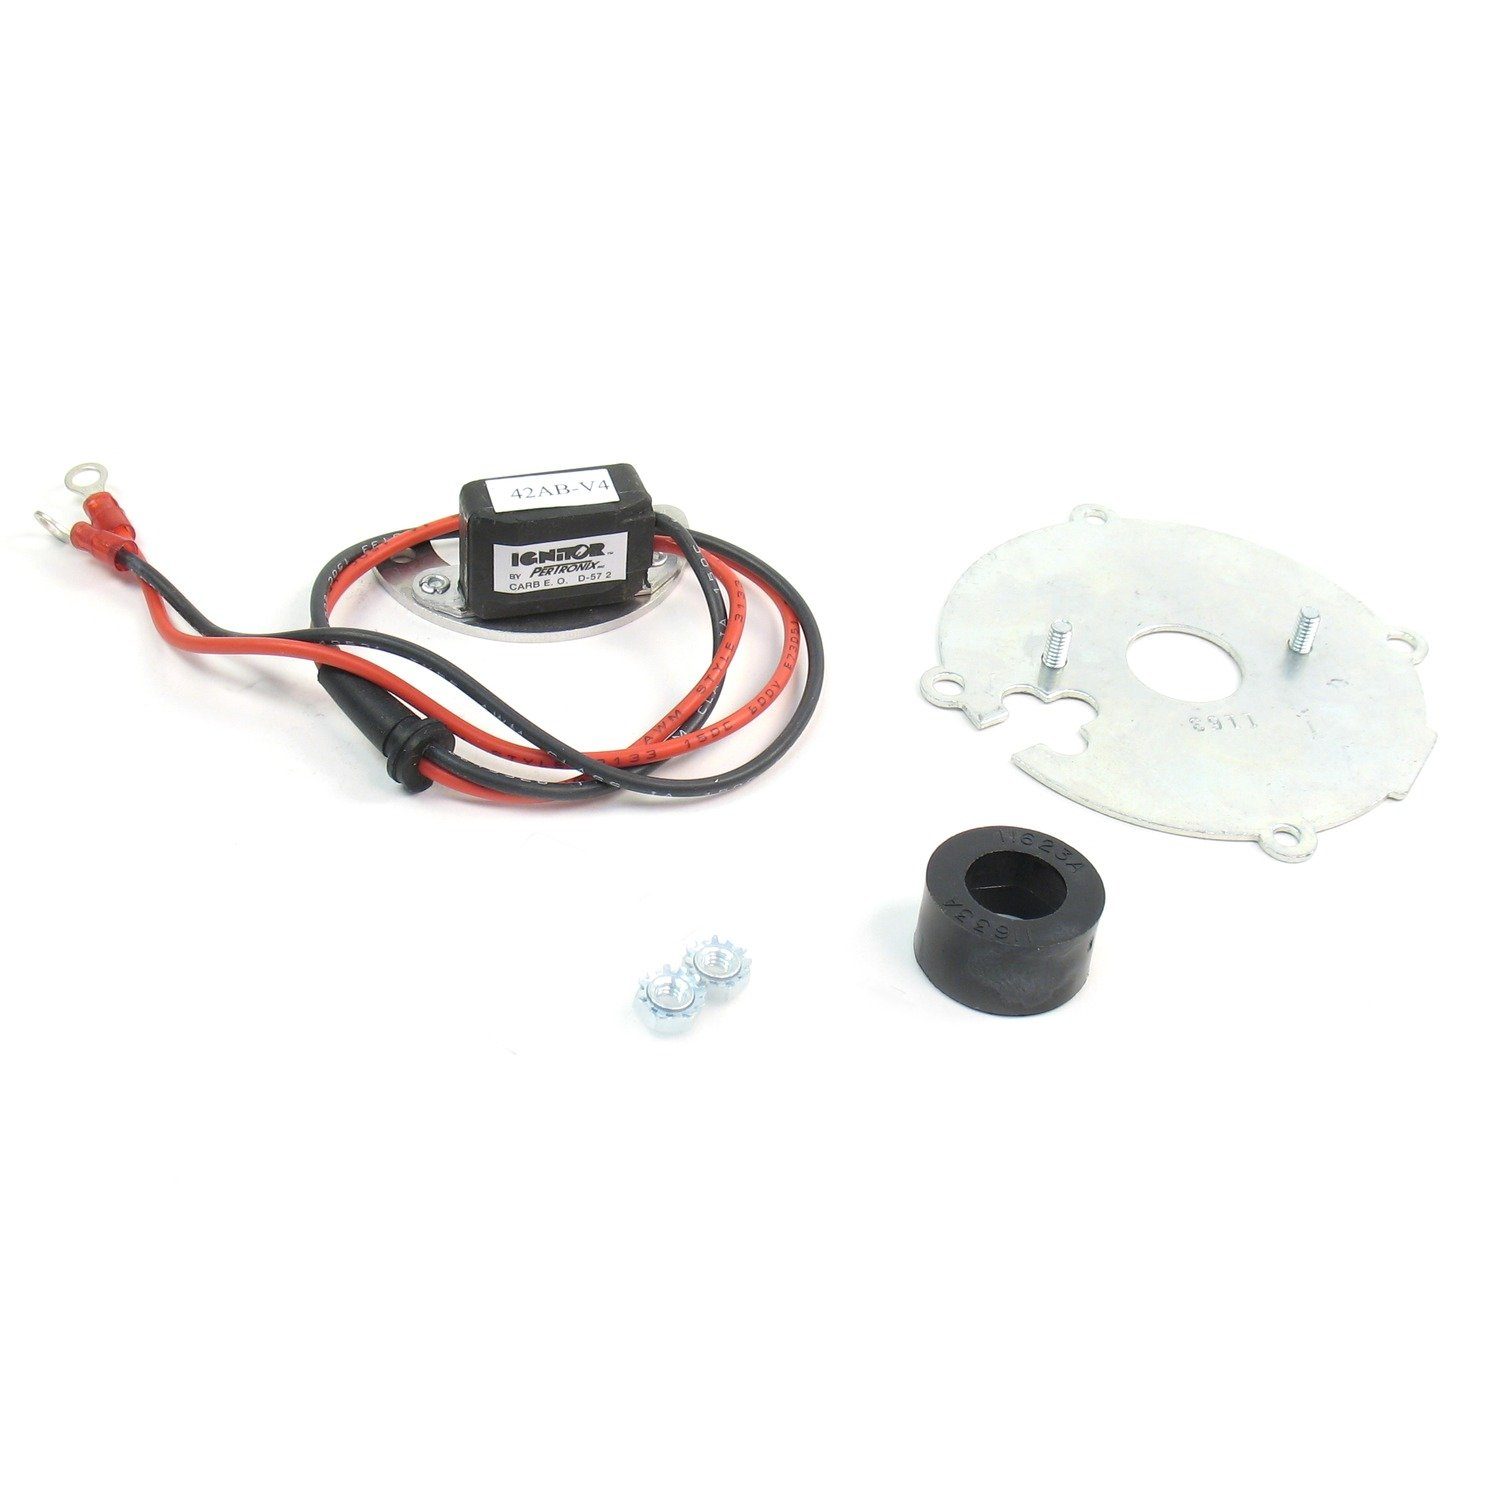 Transmission & Drive Train LATCHWELL New LW-9701002-03 Shift Cable ...